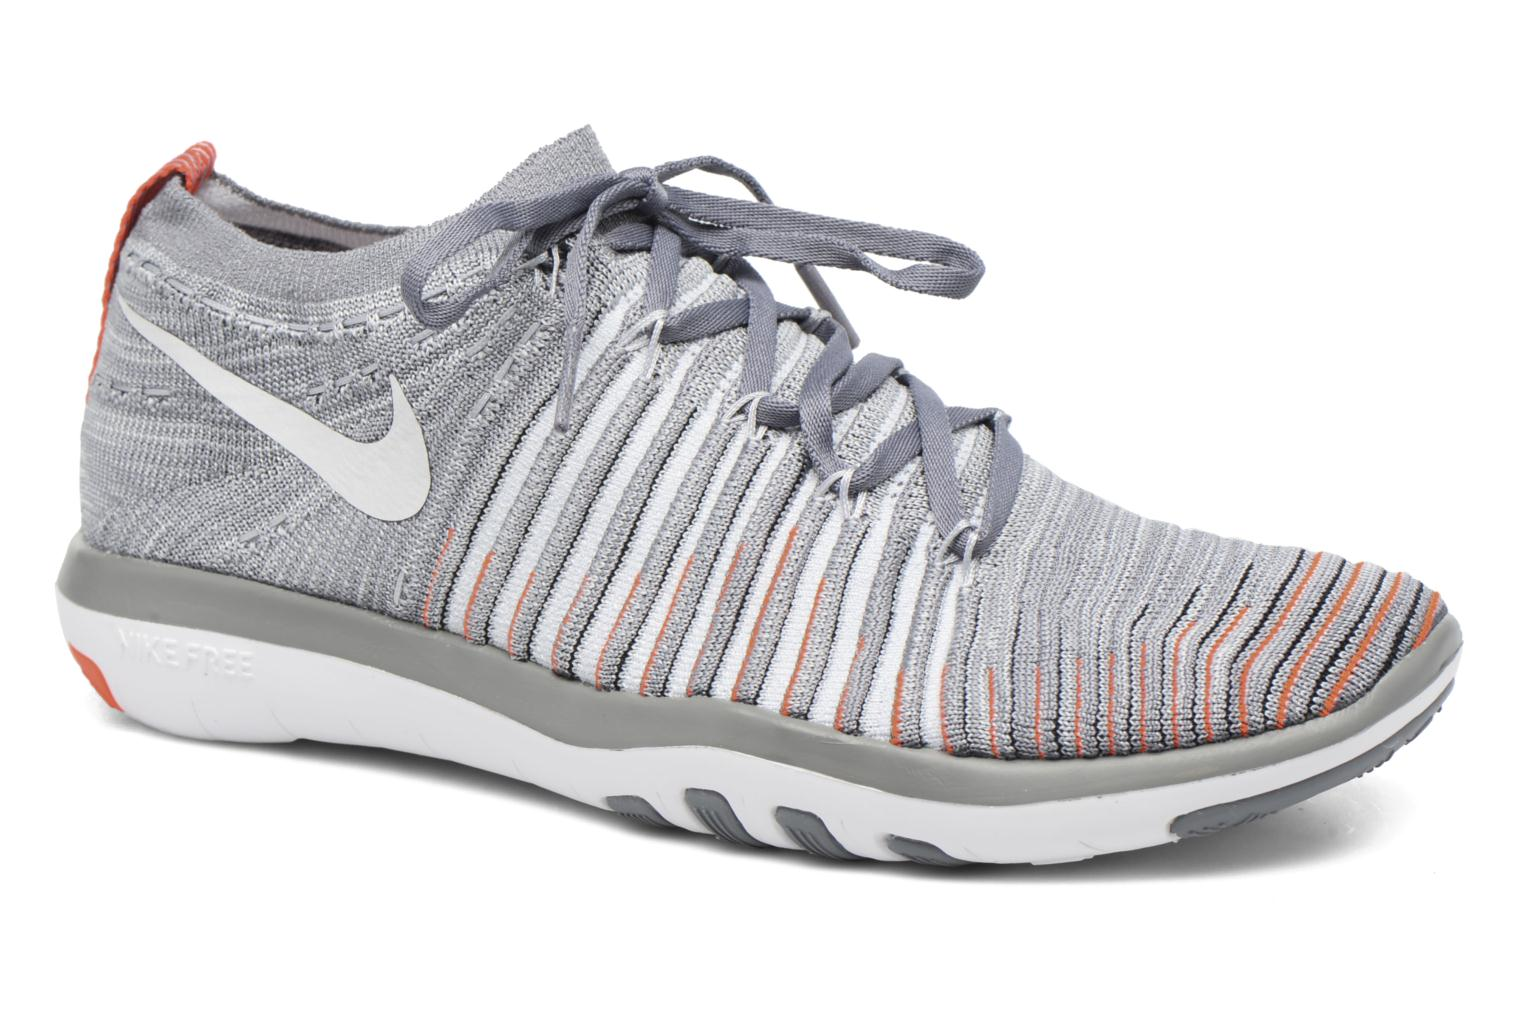 Wm Nike Free Transform Flyknit Cool Grey/Pure Platinum-Total Crimson